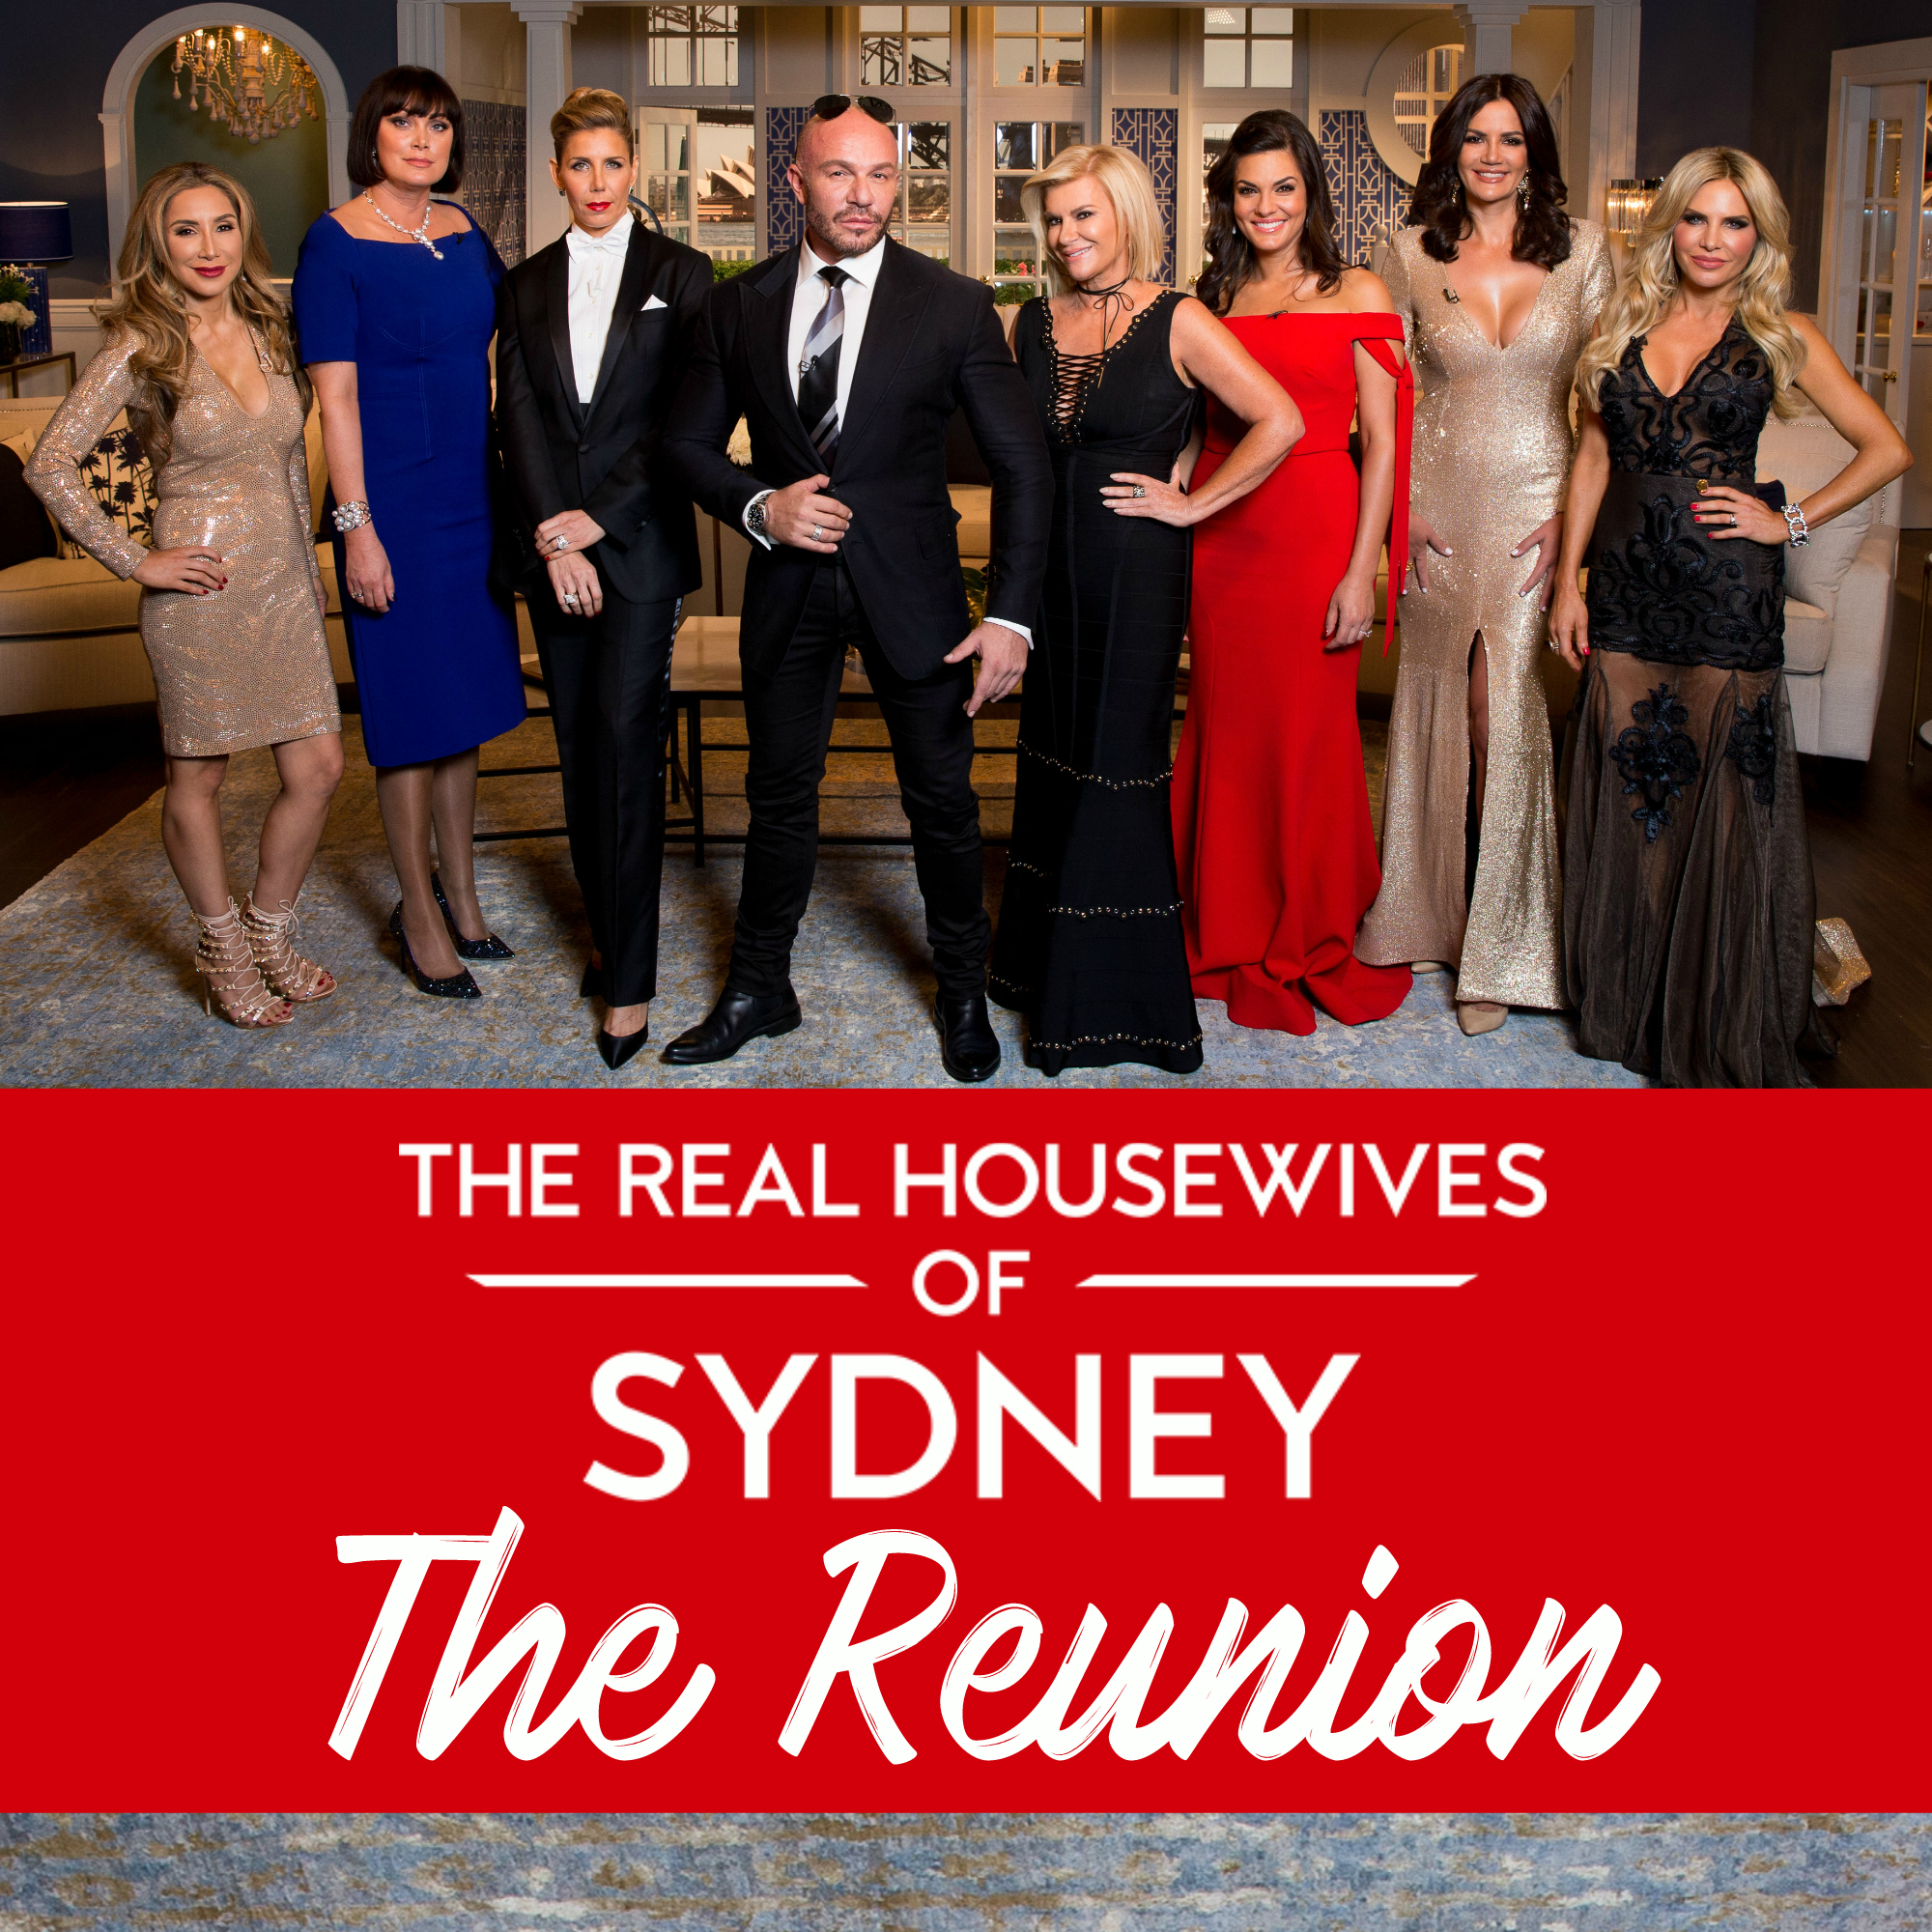 Find out what The Real Housewives of Sydney's Nicole O'Neil really feels about her fellow cast members. Is AthenaX really crazy? Does Lisa Oldfield really have no filter? Why is Melissa Tkautz so quiet? Is Krissy really all that Lisa accuses her of? Discover the truth.